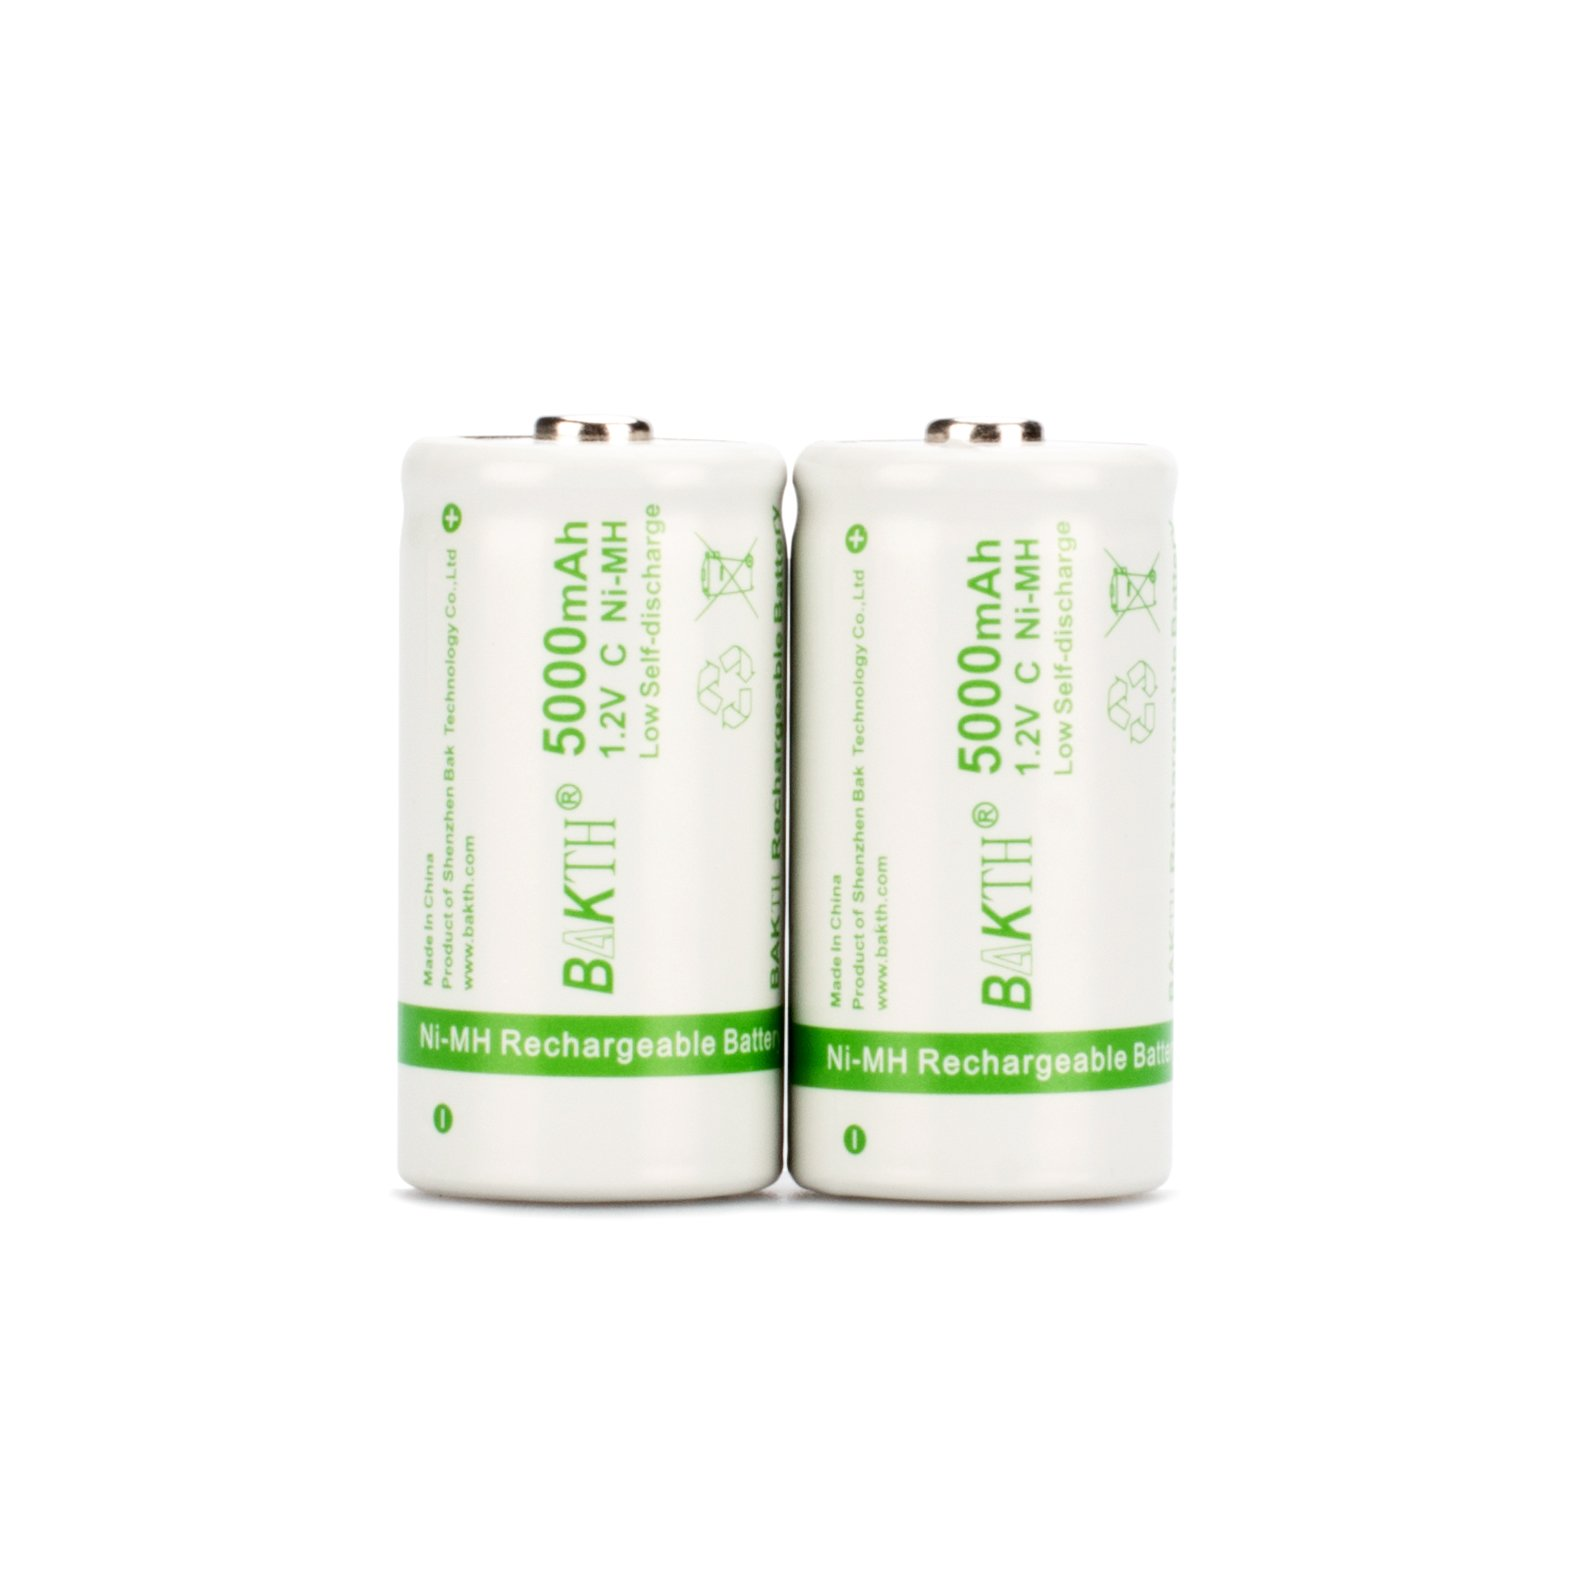 BAKTH Upgraded 5000mAh C Size High Performance NiMH Pre-Charged Low Self-Discharge Rechargeable Batteries for Household Devices (2 Pack)